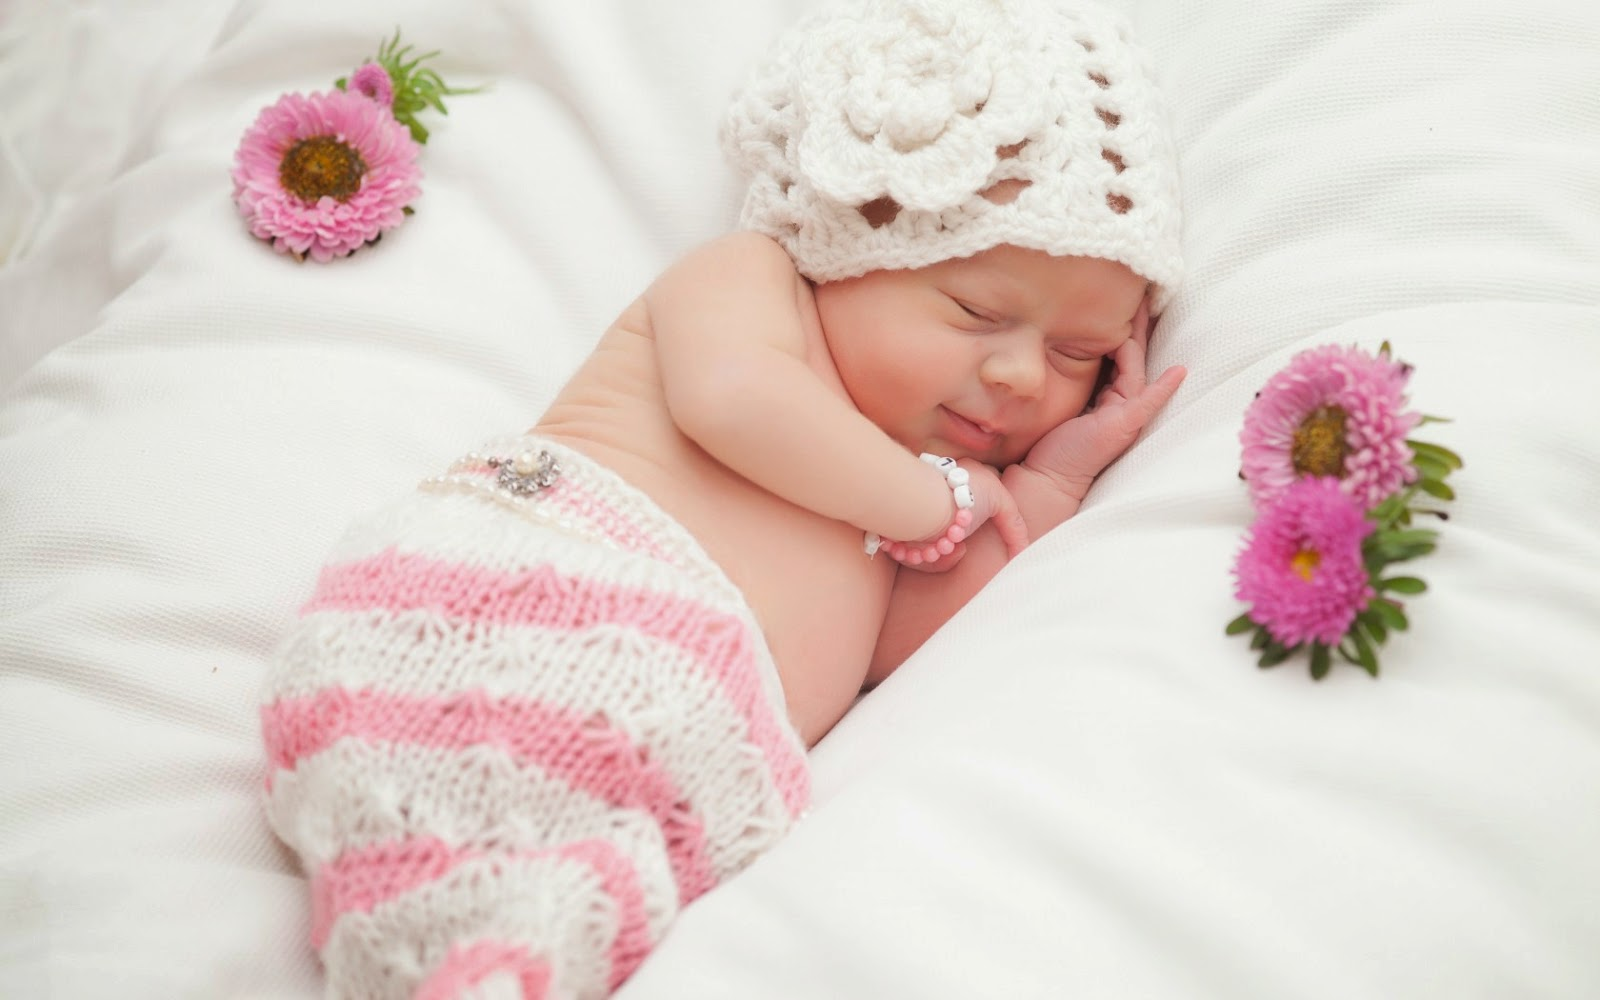 cute baby sleeping images hd photos wallpapers pictures | pixhome